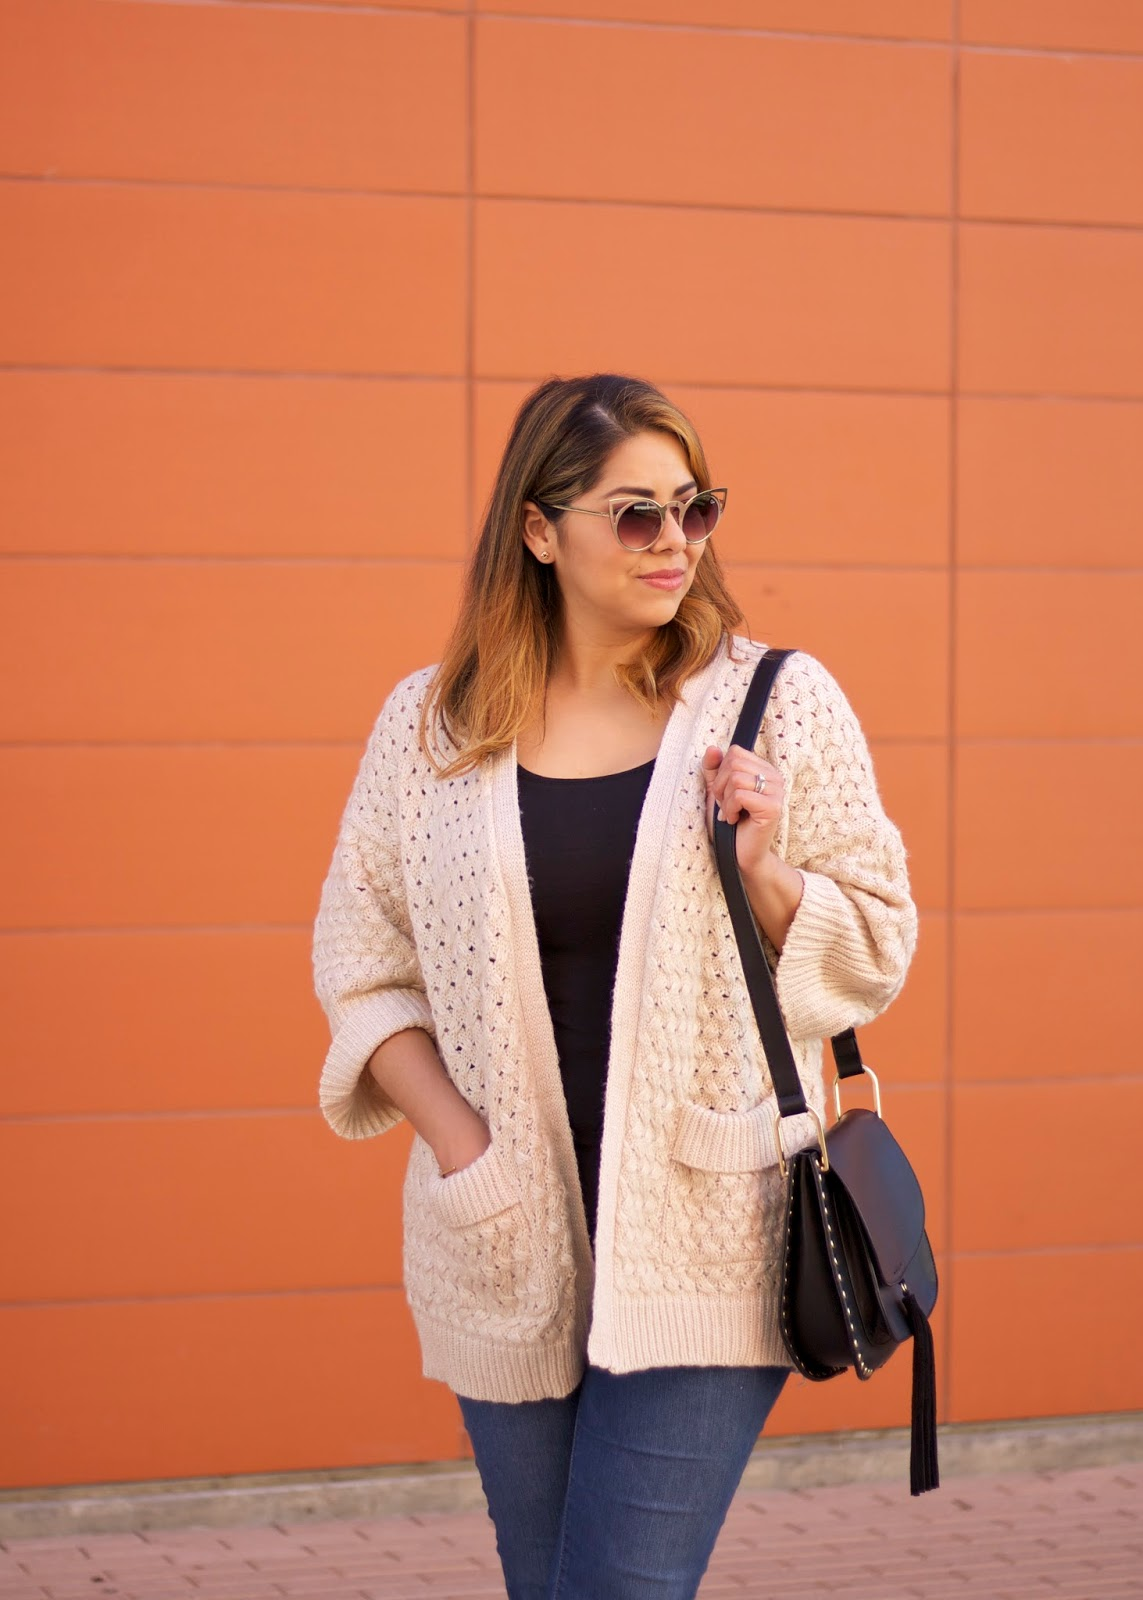 quay invader sunglasses, quay gold sunglasses, shein knitted sweater, sheinside blogger, shein coupon code